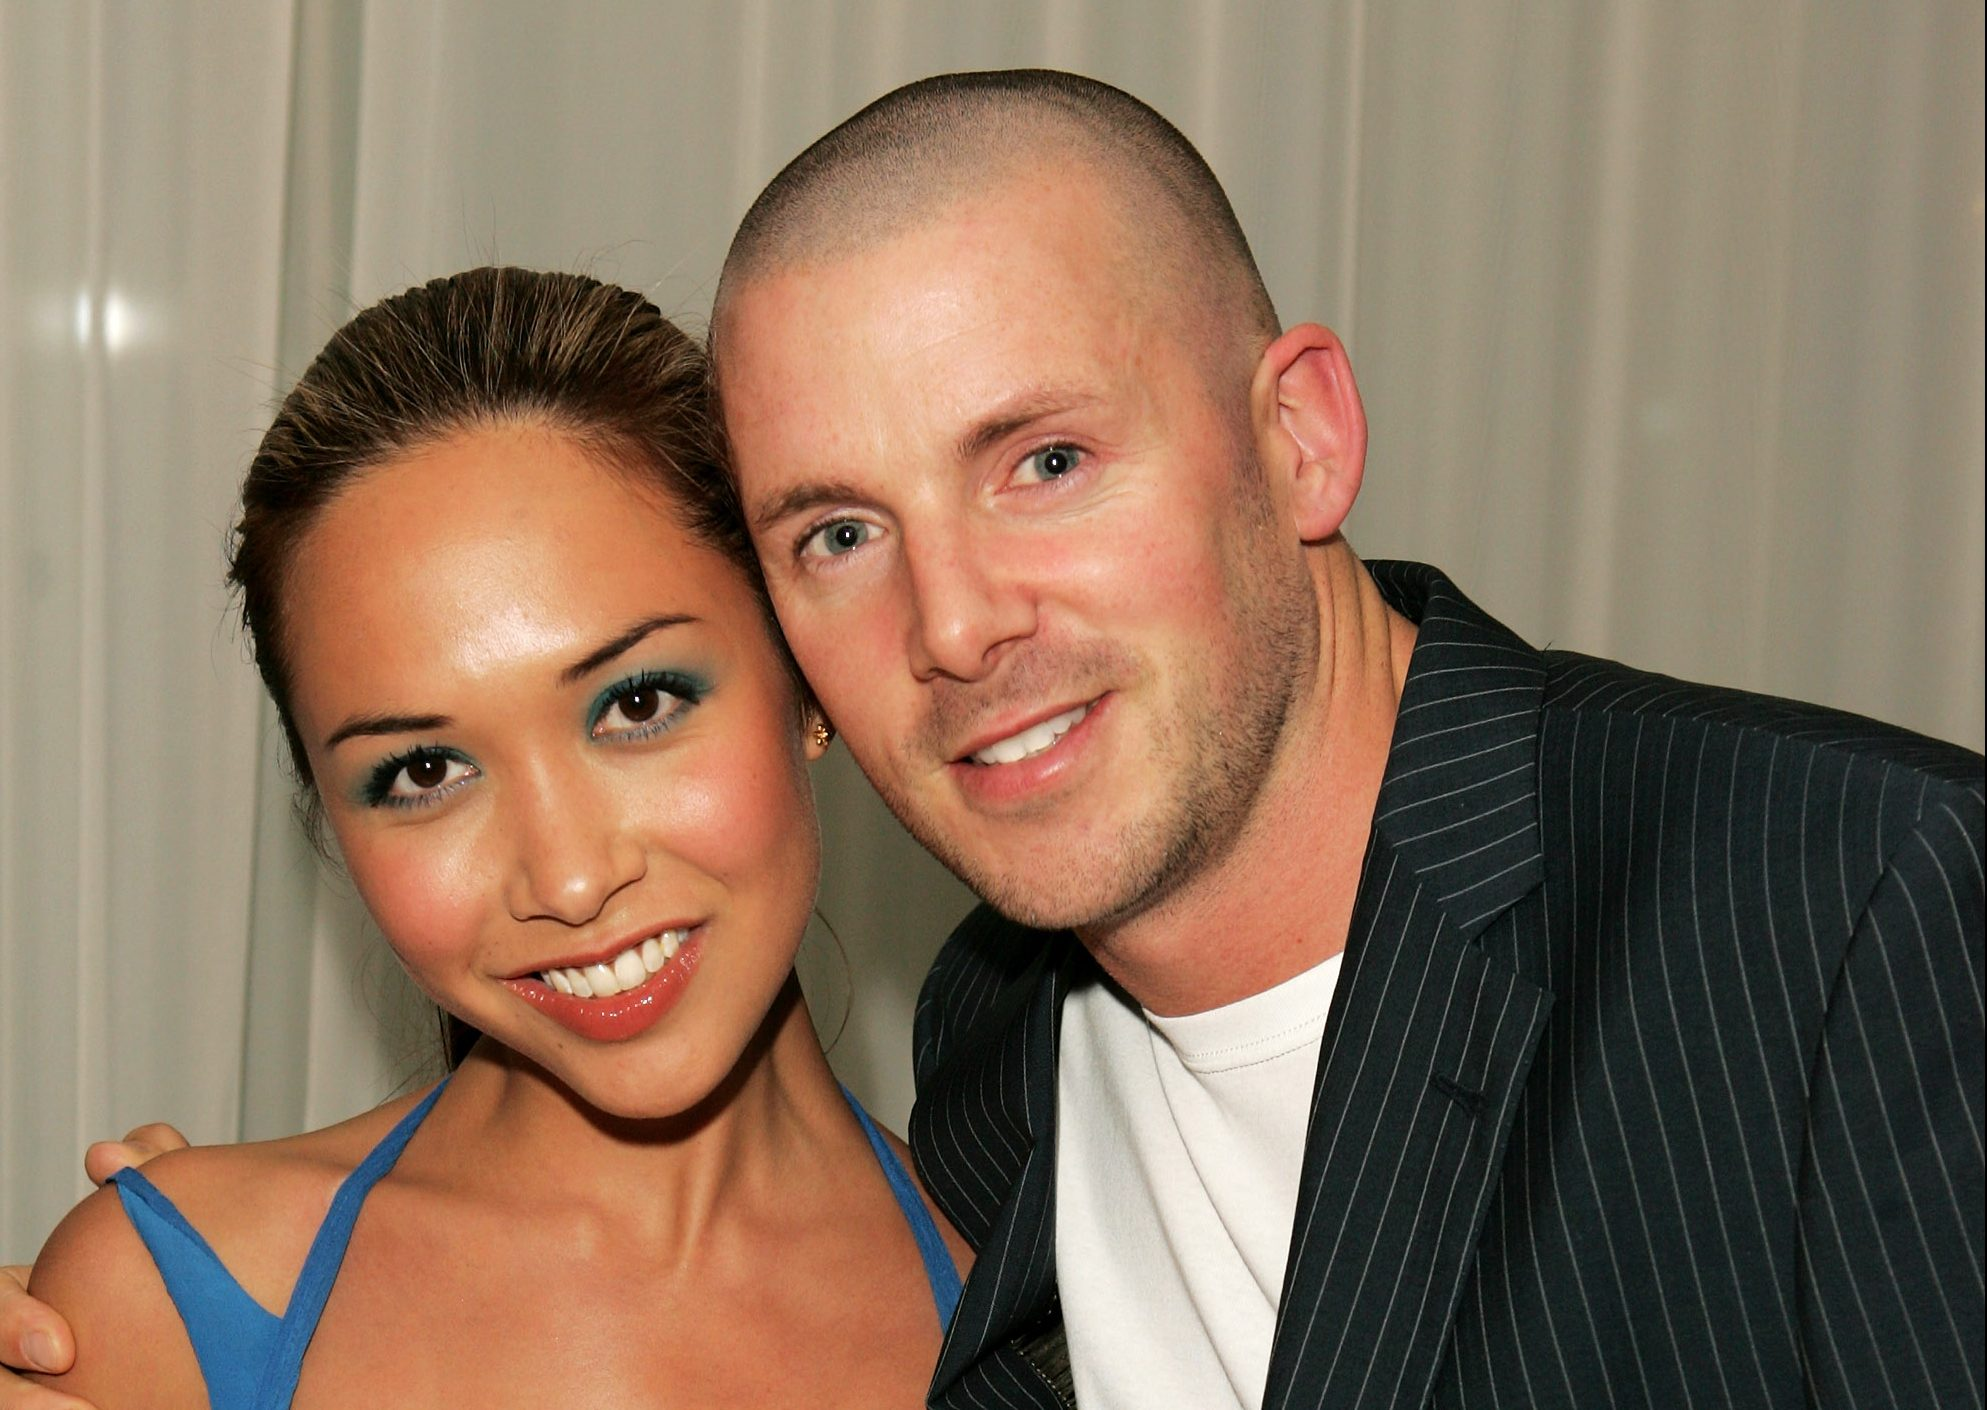 Myleene Klass 'would drink at 11am' during painful divorce from Graham Quinn